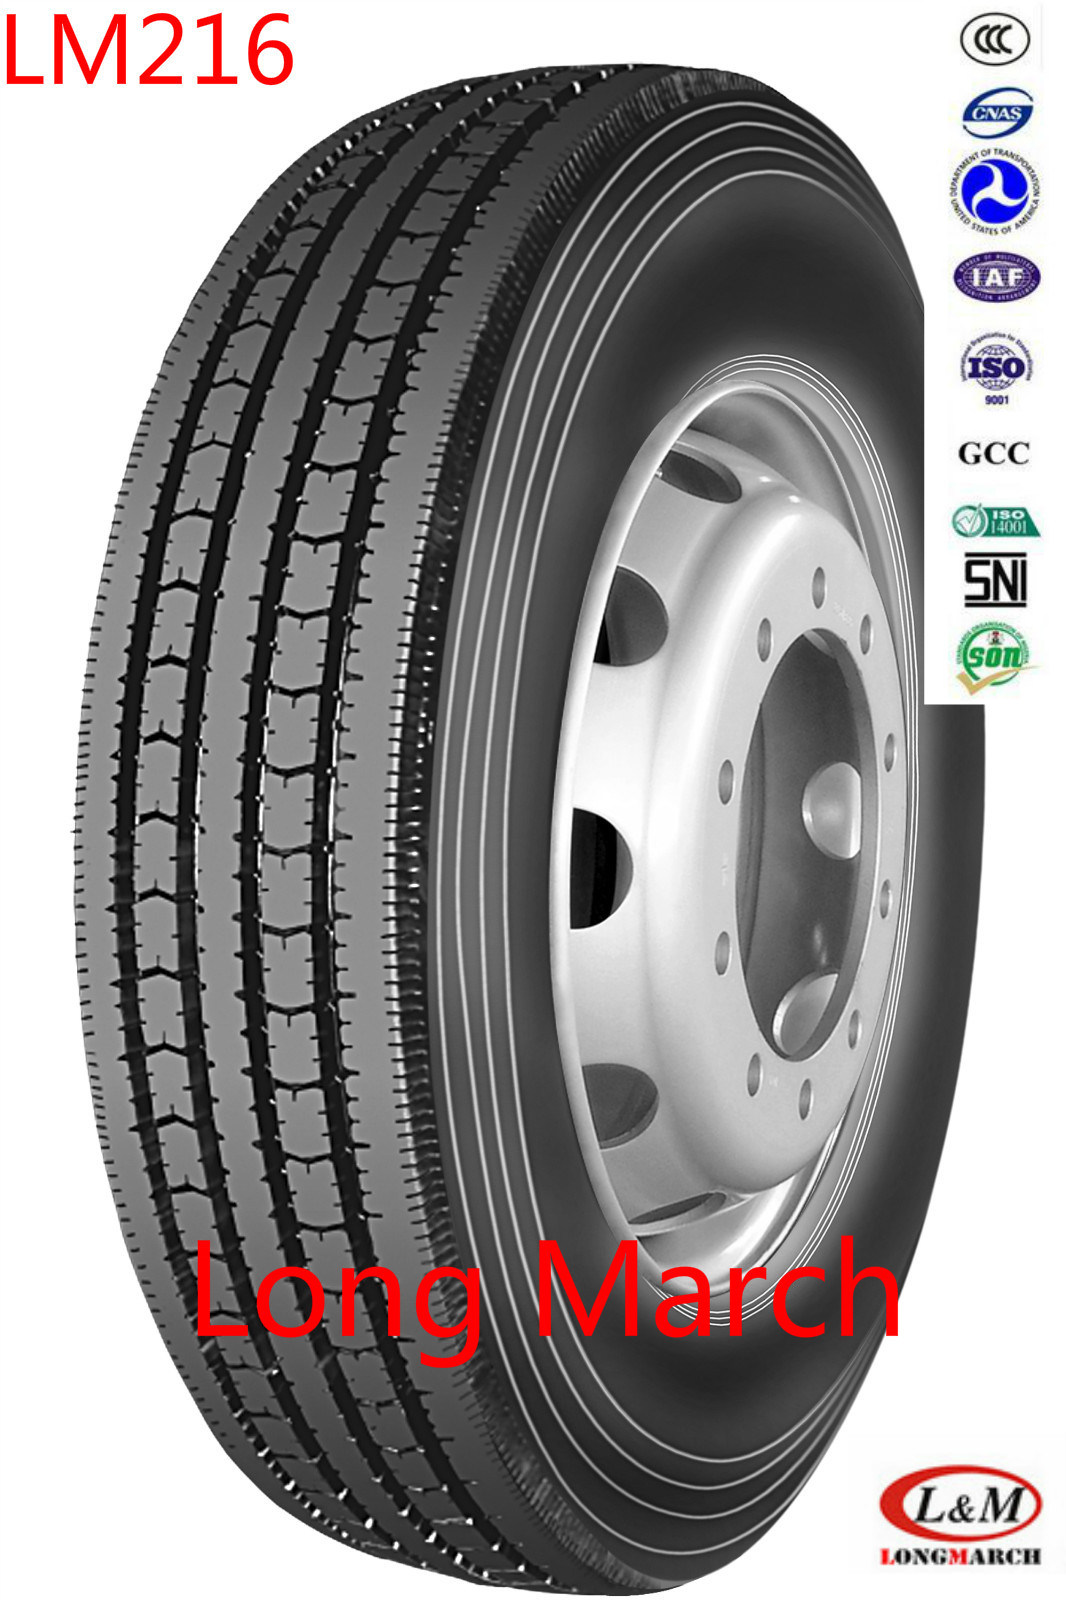 Longmarch/Double Coin 315/80R22.5 11R22.5 Radial Truck Tire (LM216)